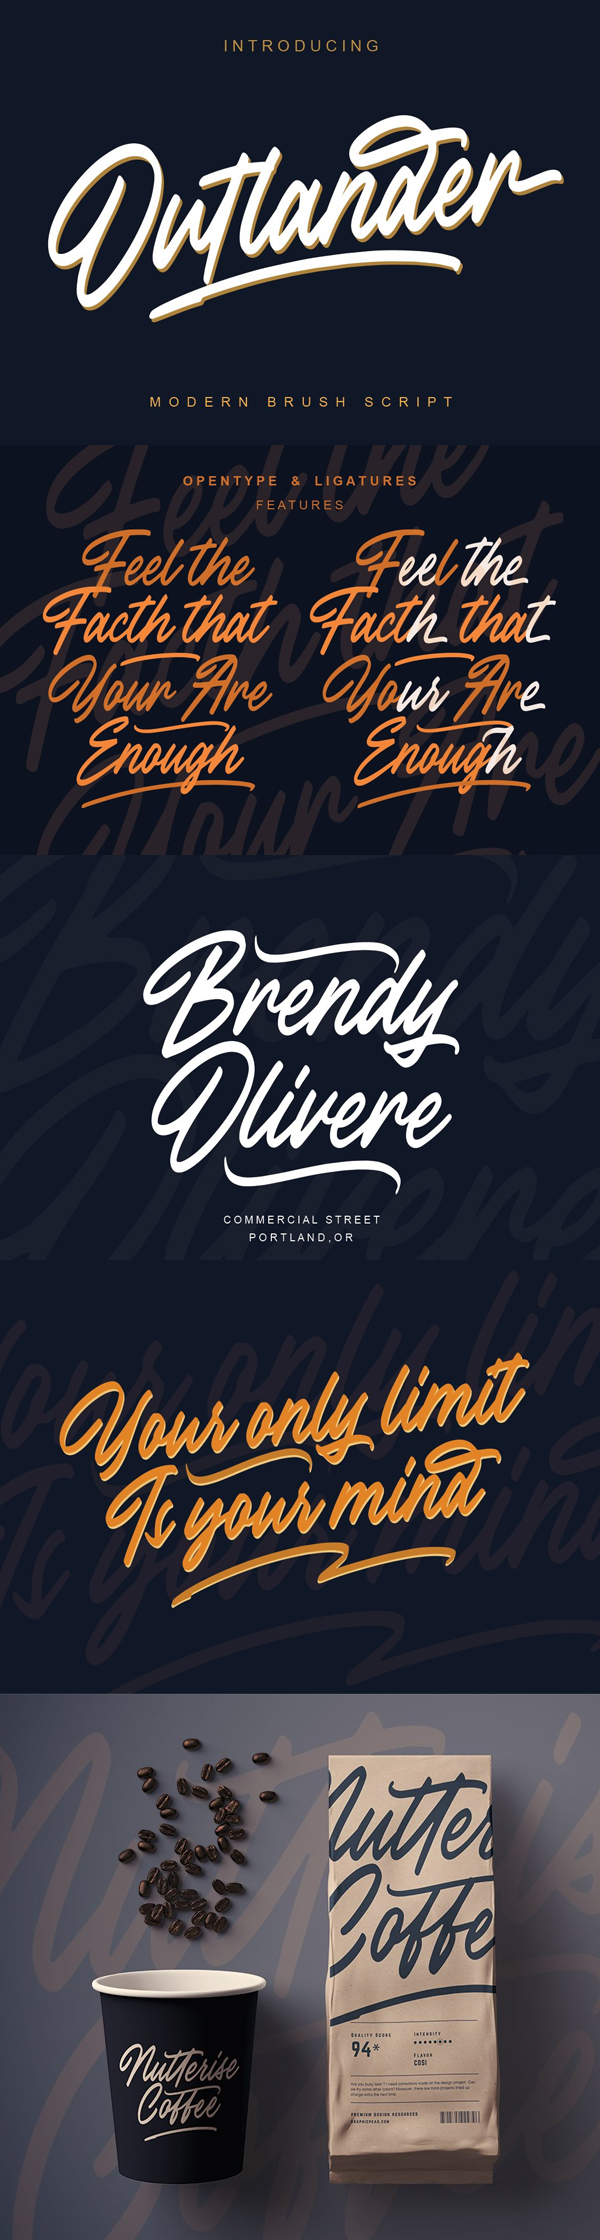 100 Greatest Free Fonts for 2020 - 24